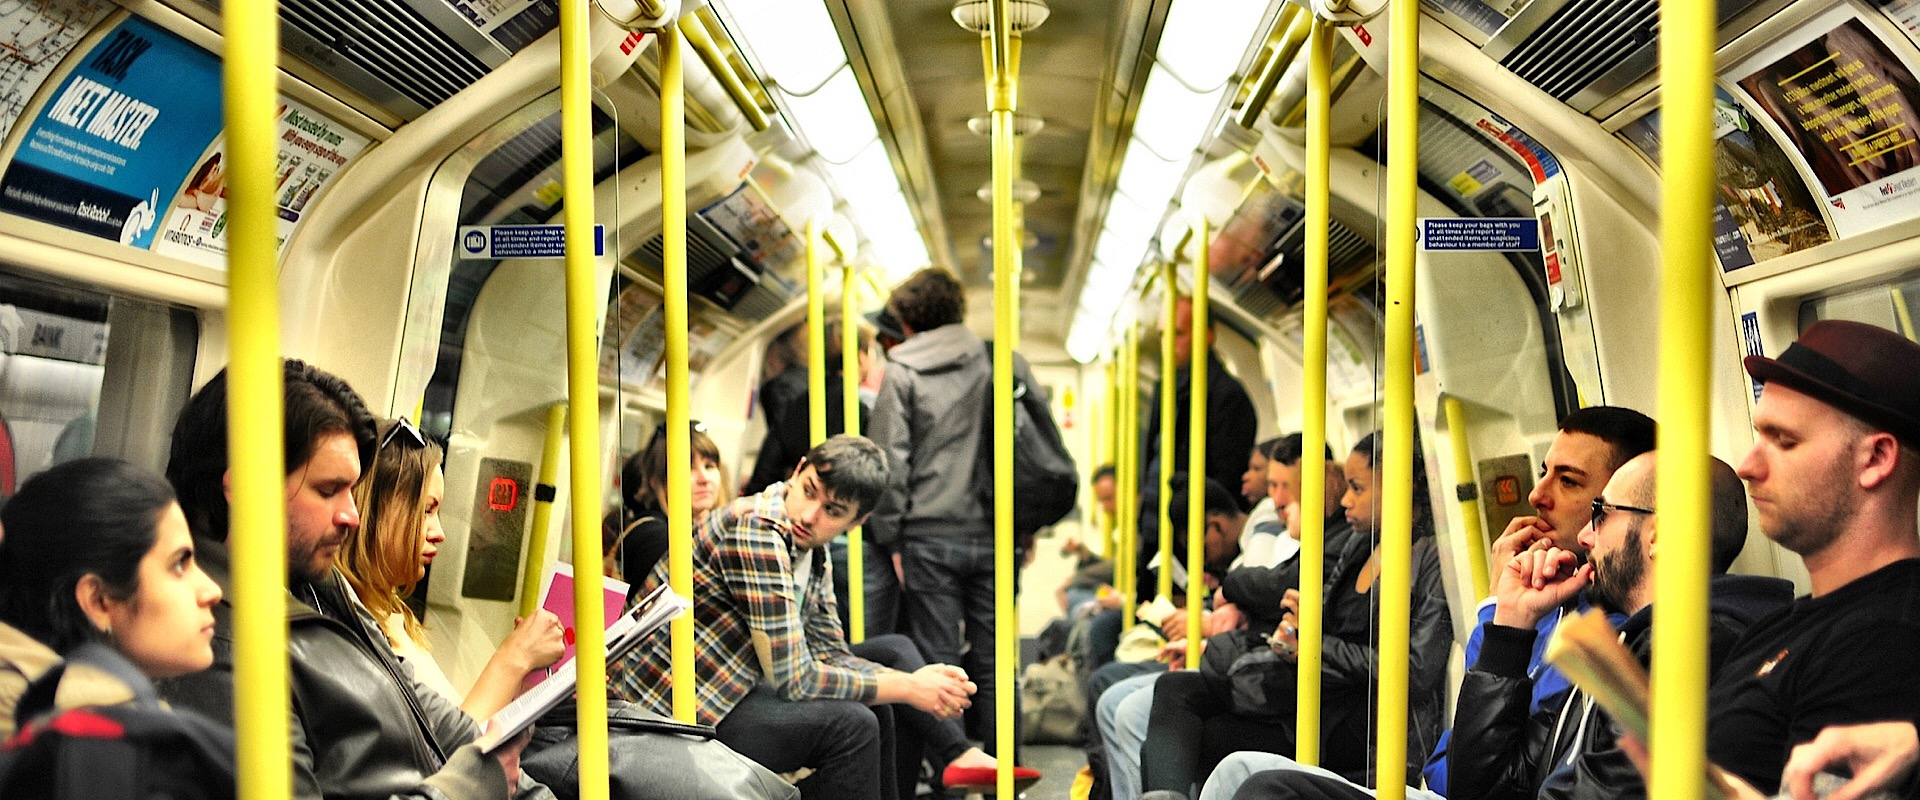 How To Take The Misery Out Of Commuting to Improve your Employees' Wellbeing